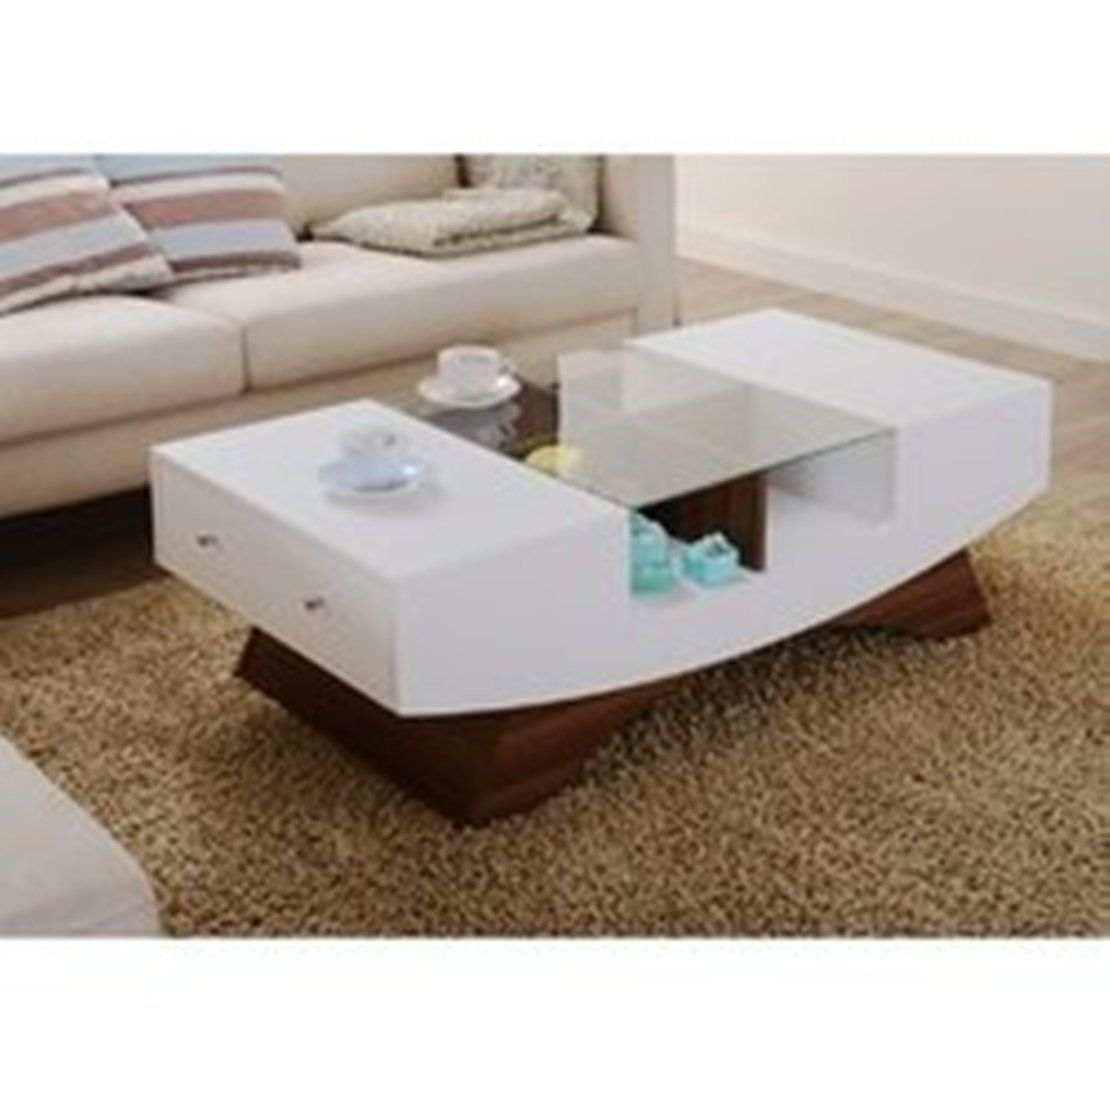 Coffee table buy online jumia nigeria Coffee table buy